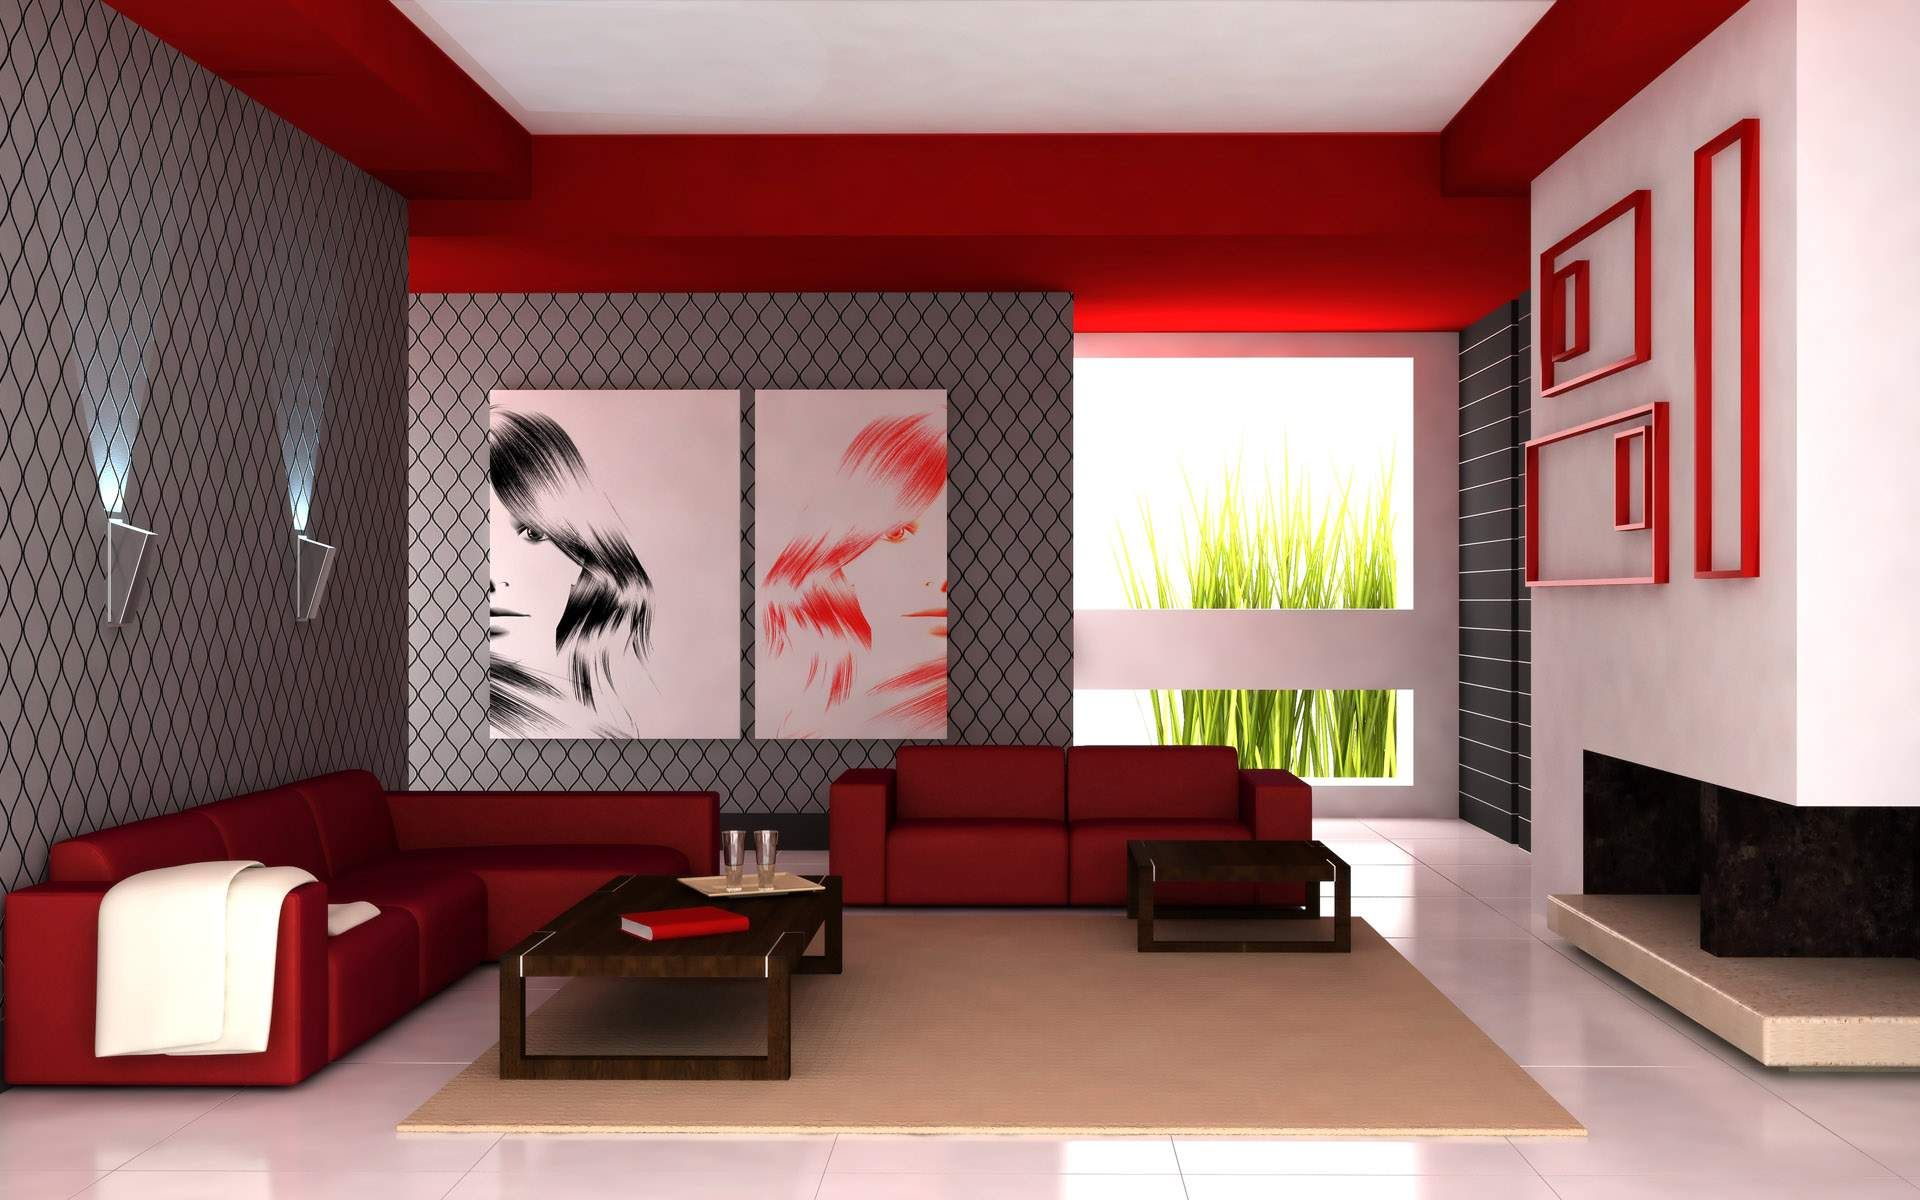 Living Room Interior With Flashy Red Color Design Modern Living - Living room interior design